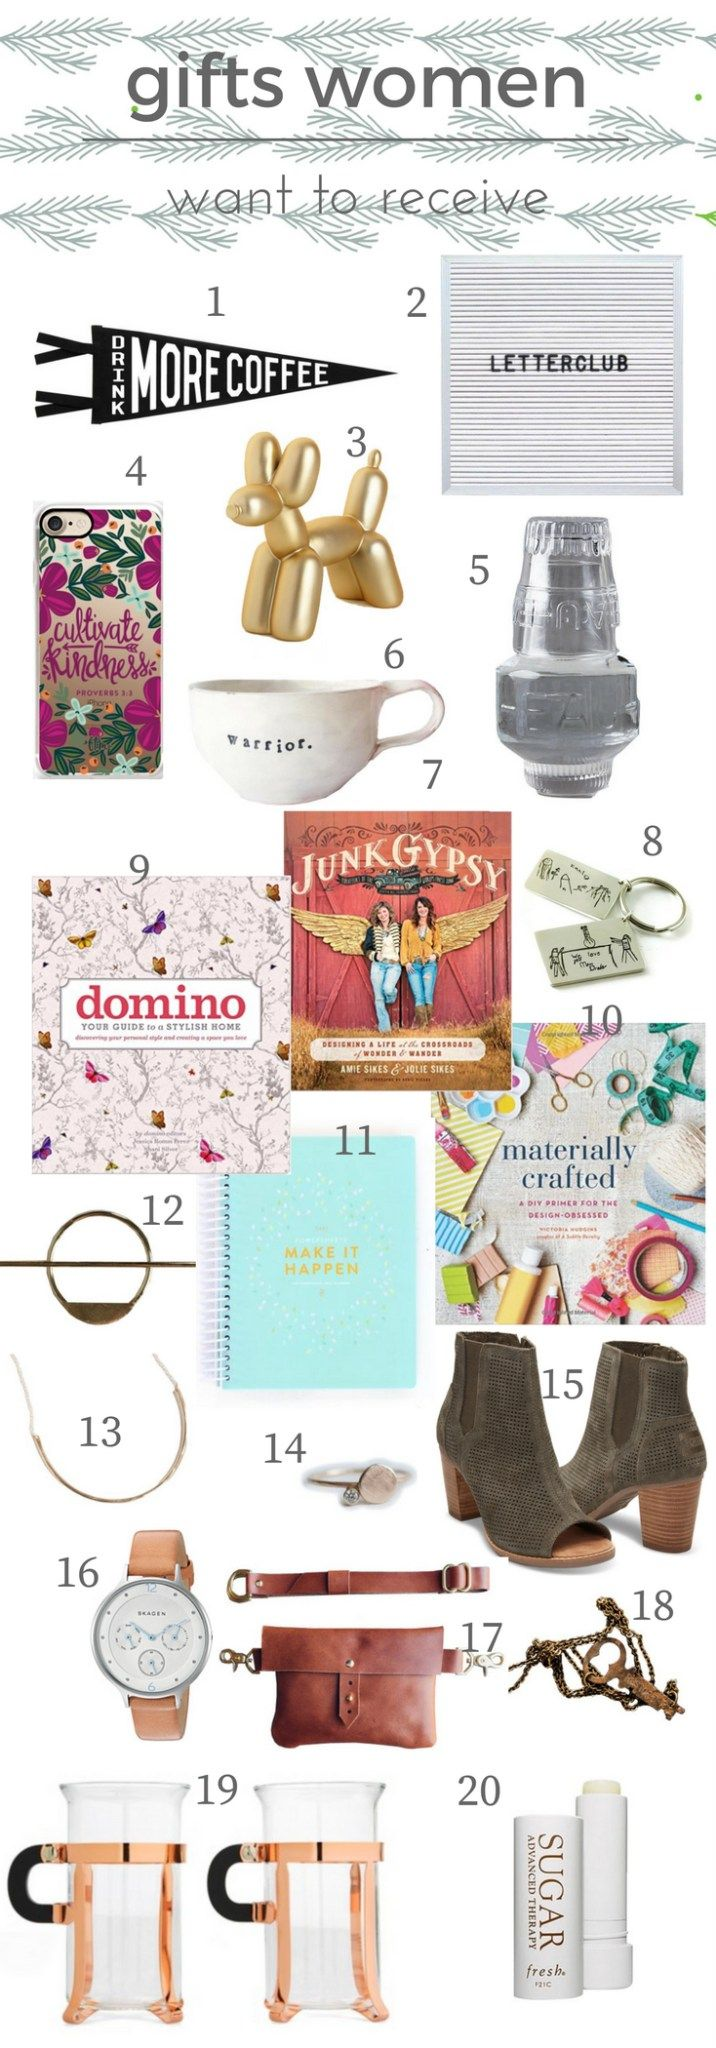 20 gifts that women will love are found in this list of gift ideas!